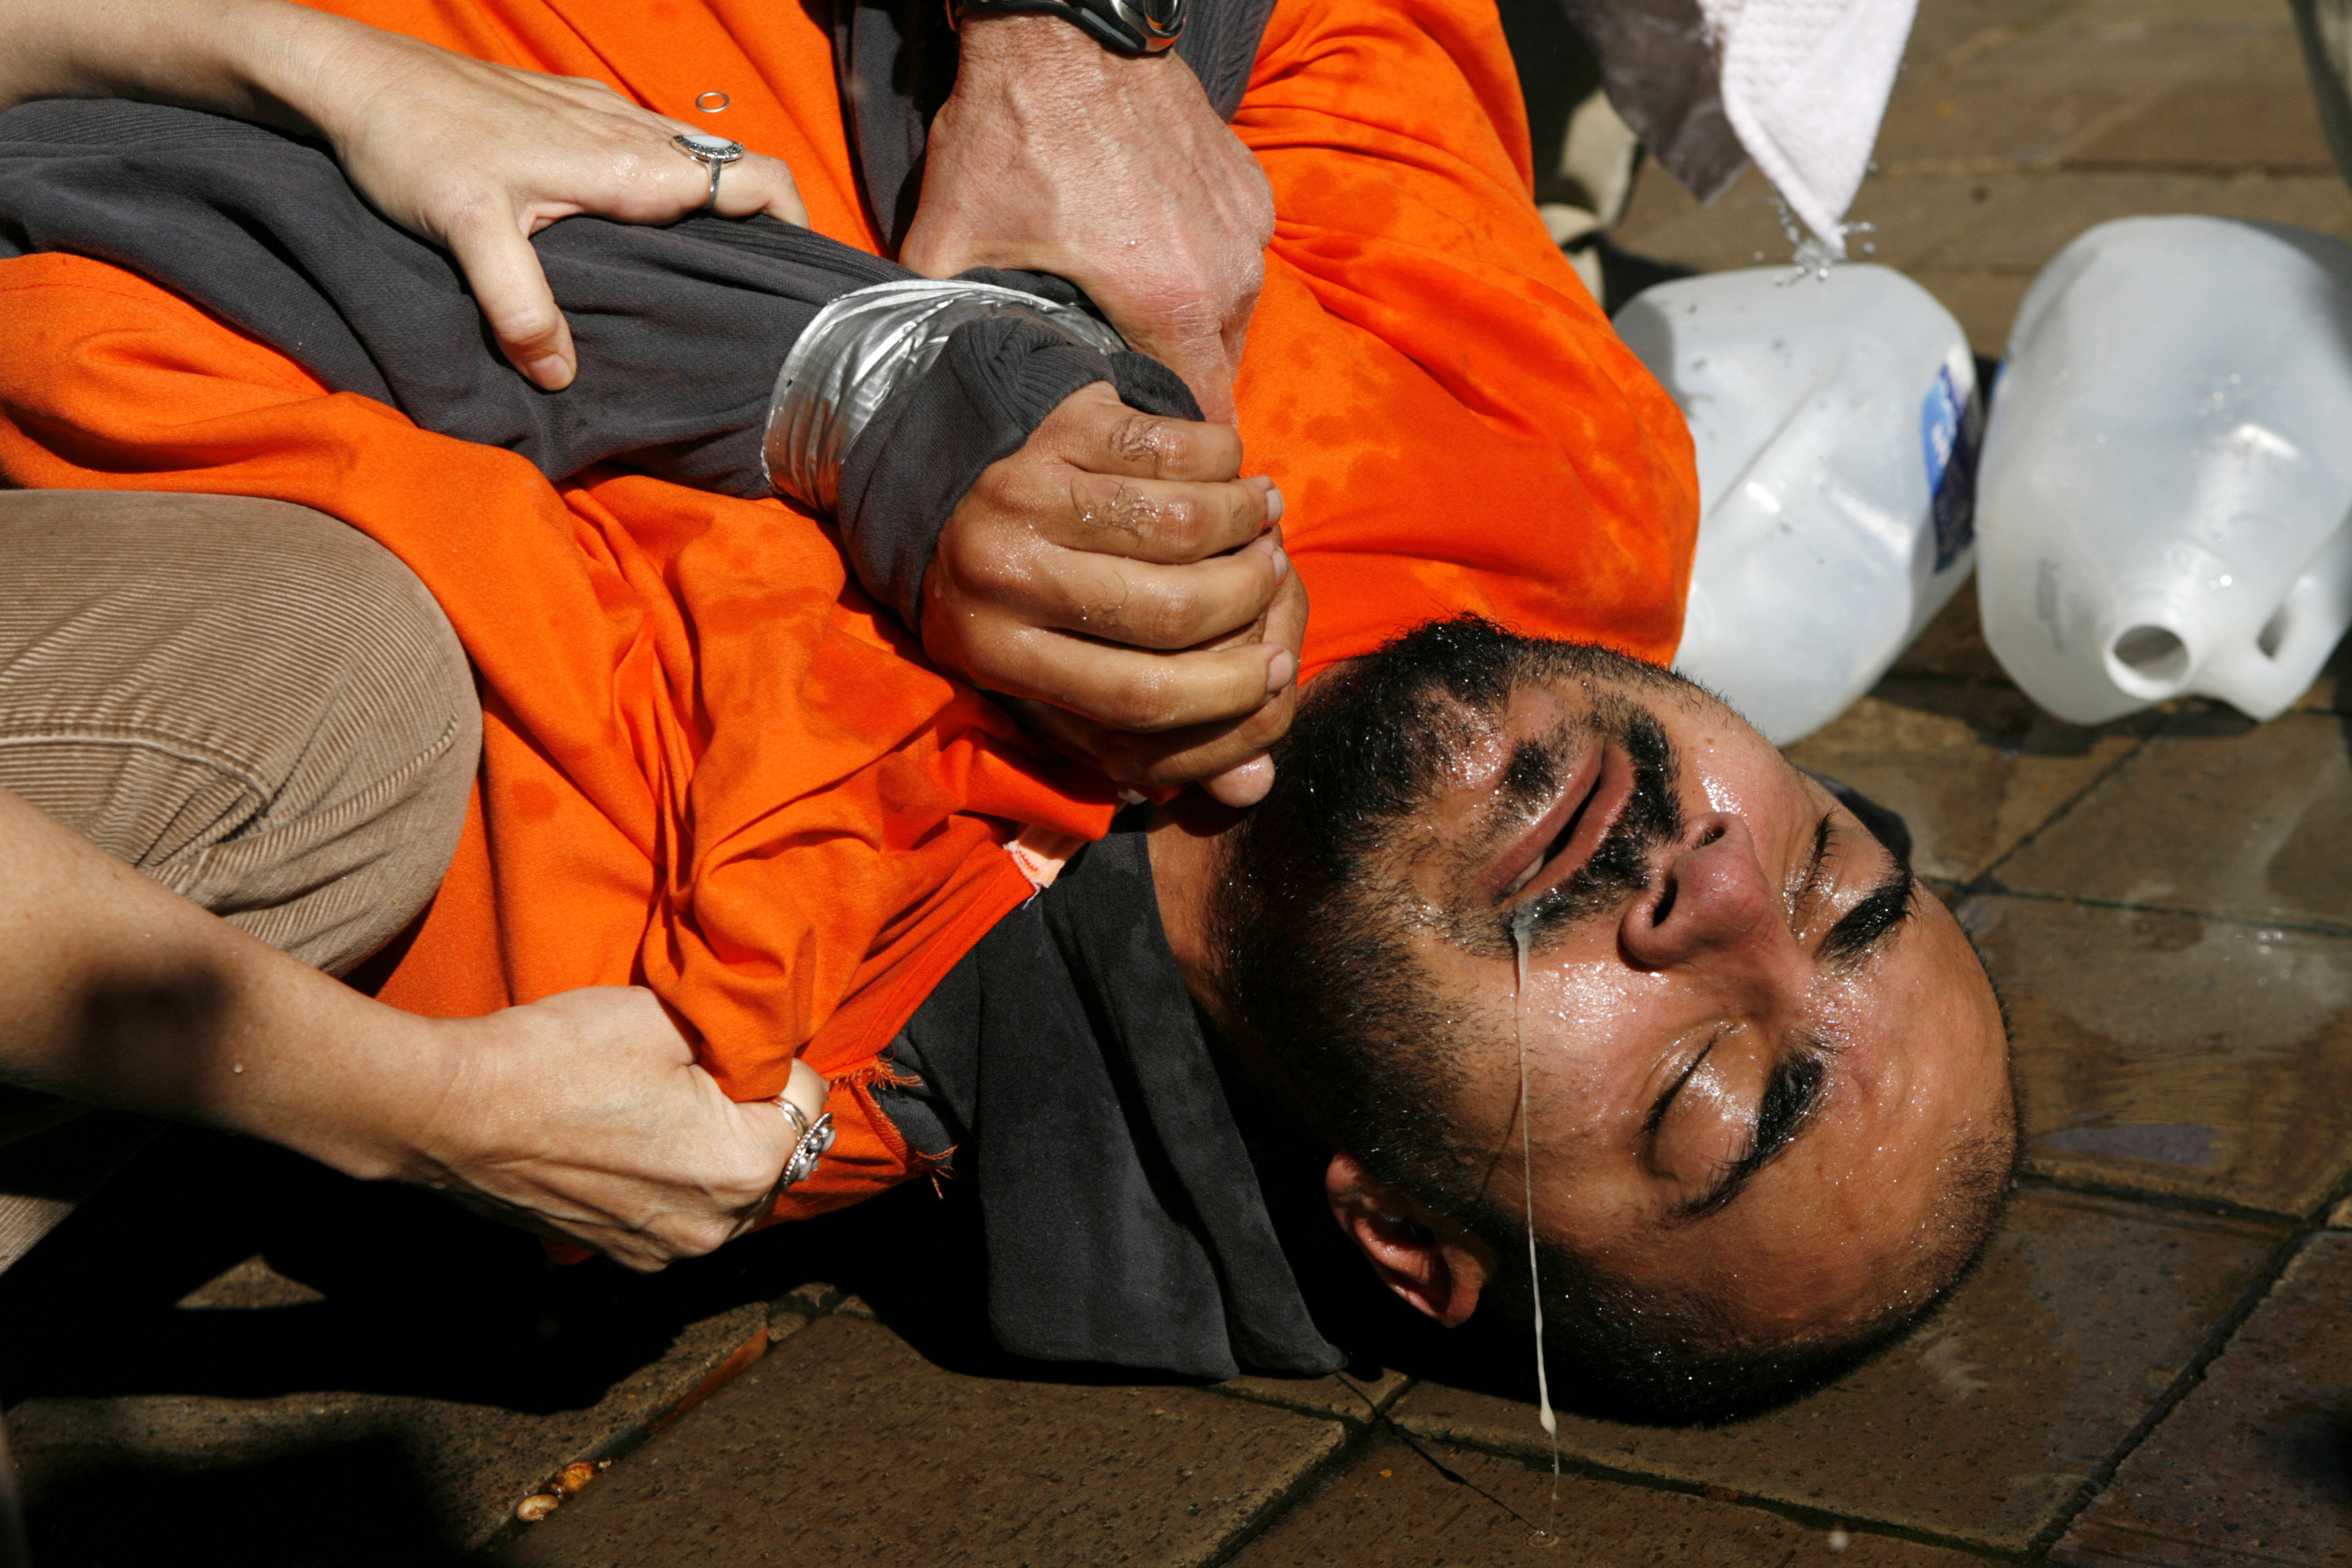 is torture ever an acceptable method Nearly two-thirds of americans believe torture can be justified to extract  information  waterboarding - an interrogation technique that simulates drowning  that human rights  only 15 percent said torture should never be used.